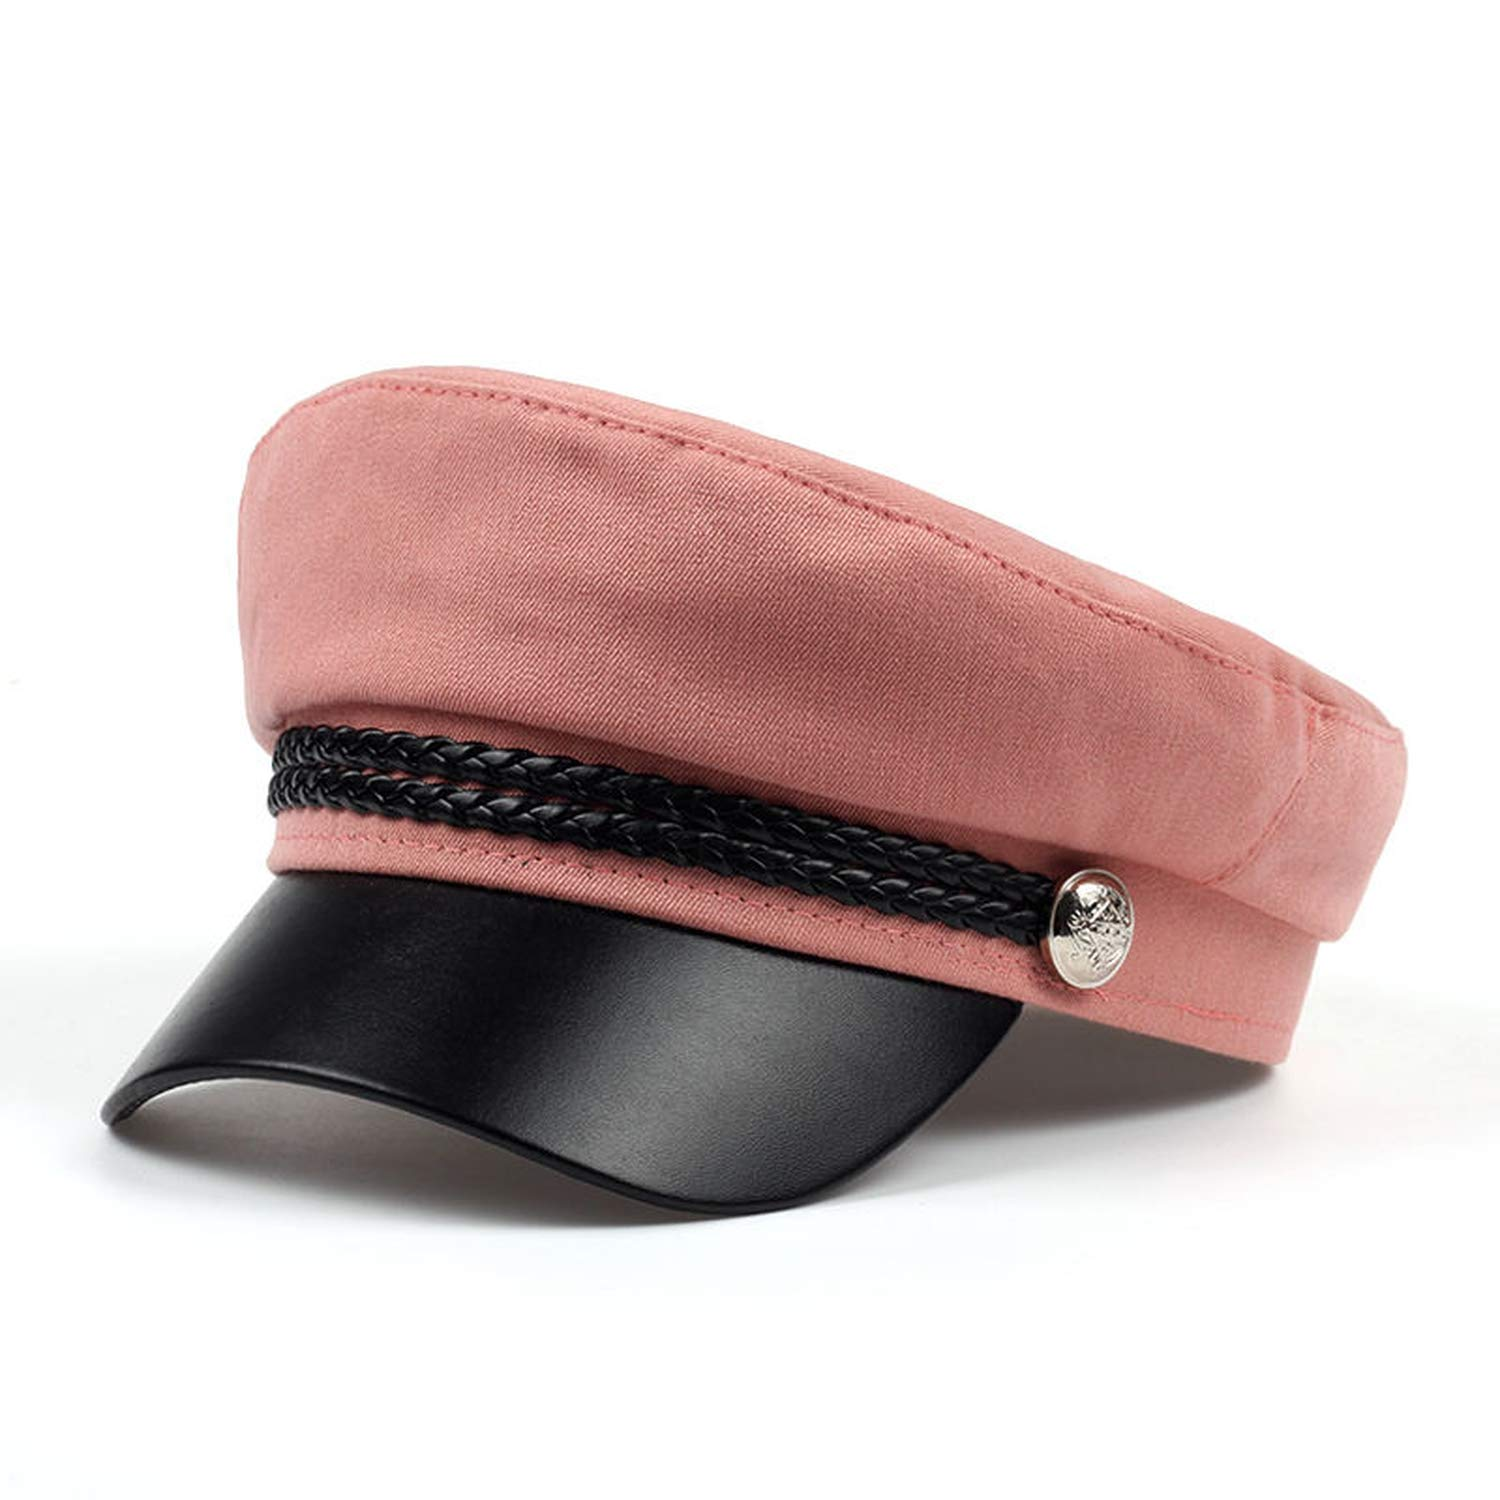 HiiWorld 2019 Female hat Spring 100/% Cotton Navy hat Fashion Black Leather Fixed Crown Winter Warm hat Berets hat Cap